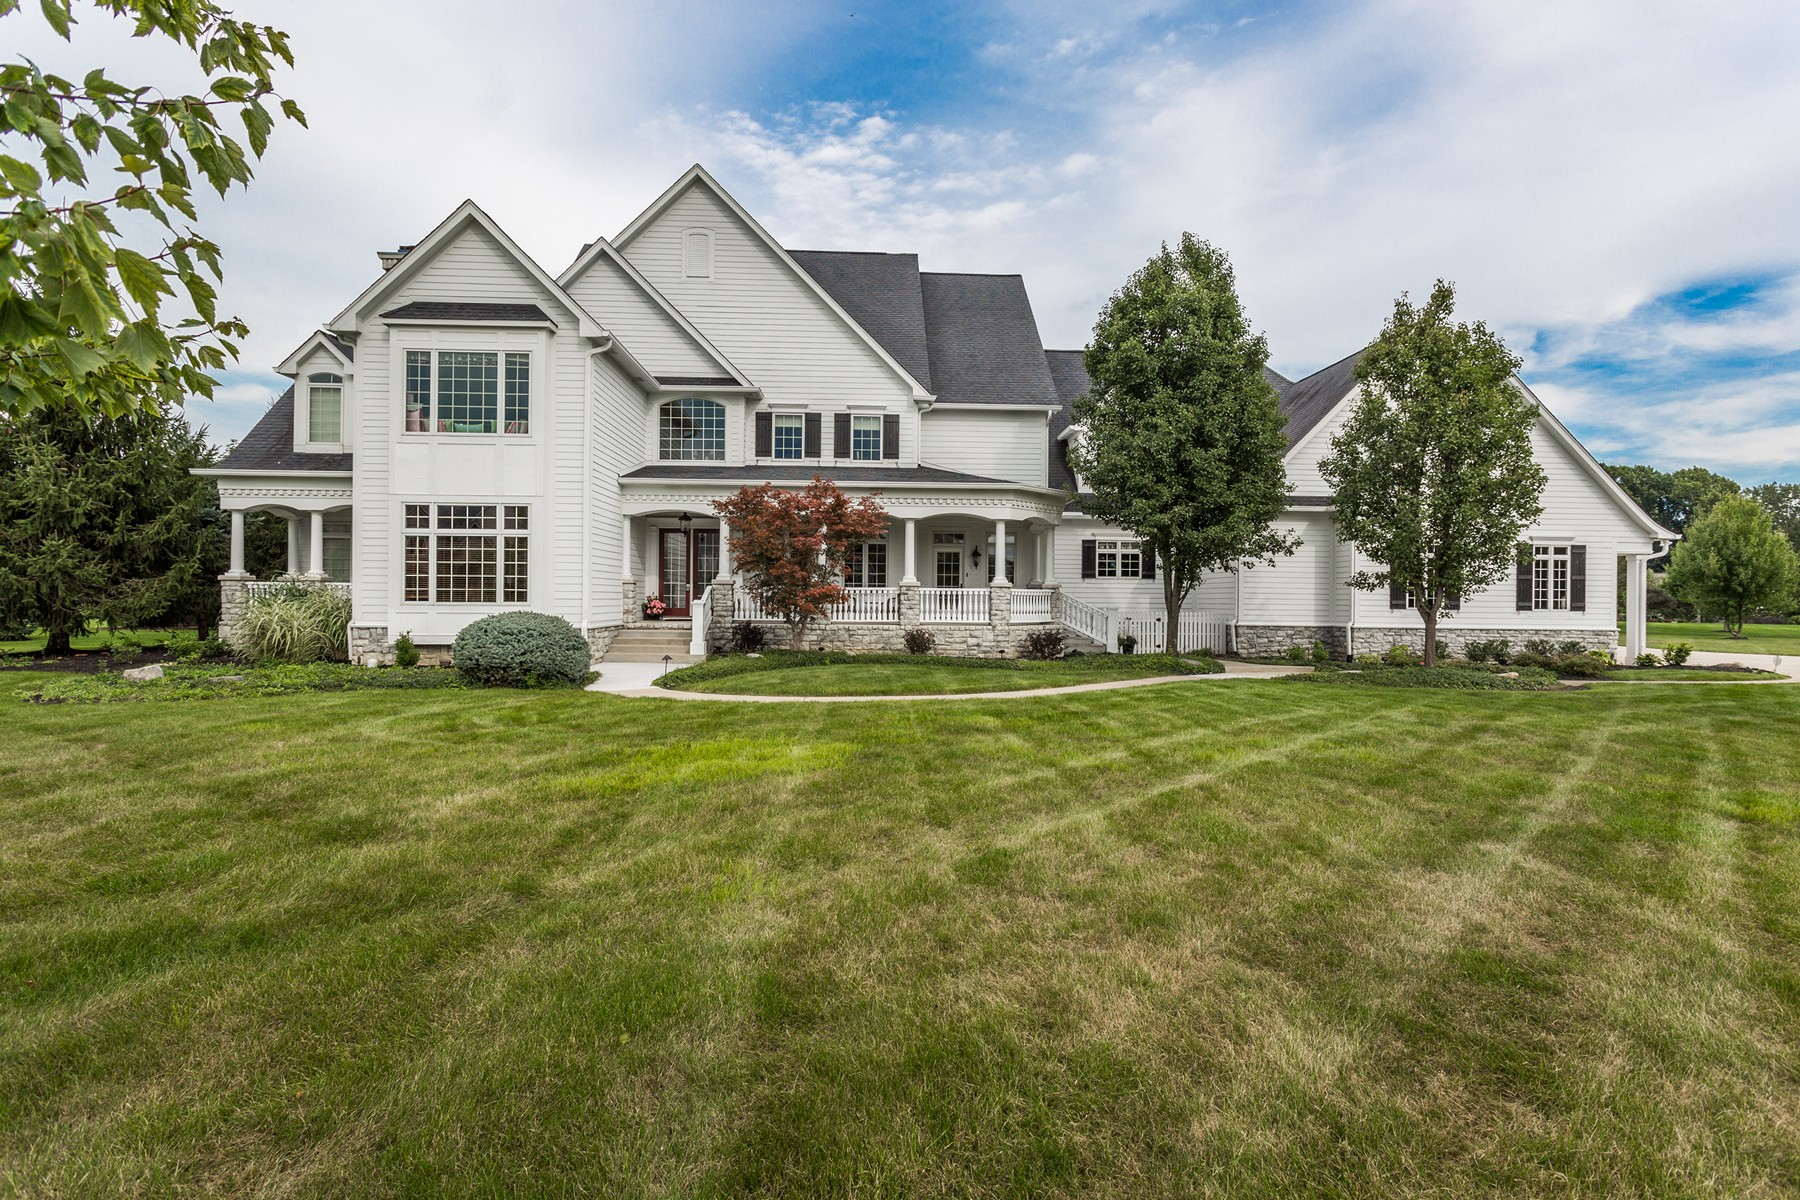 단독 가정 주택 용 매매 에 Stunning Willow Ridge Estate 11527 Willow Ridge Dr Zionsville, 인디애나, 46077 미국